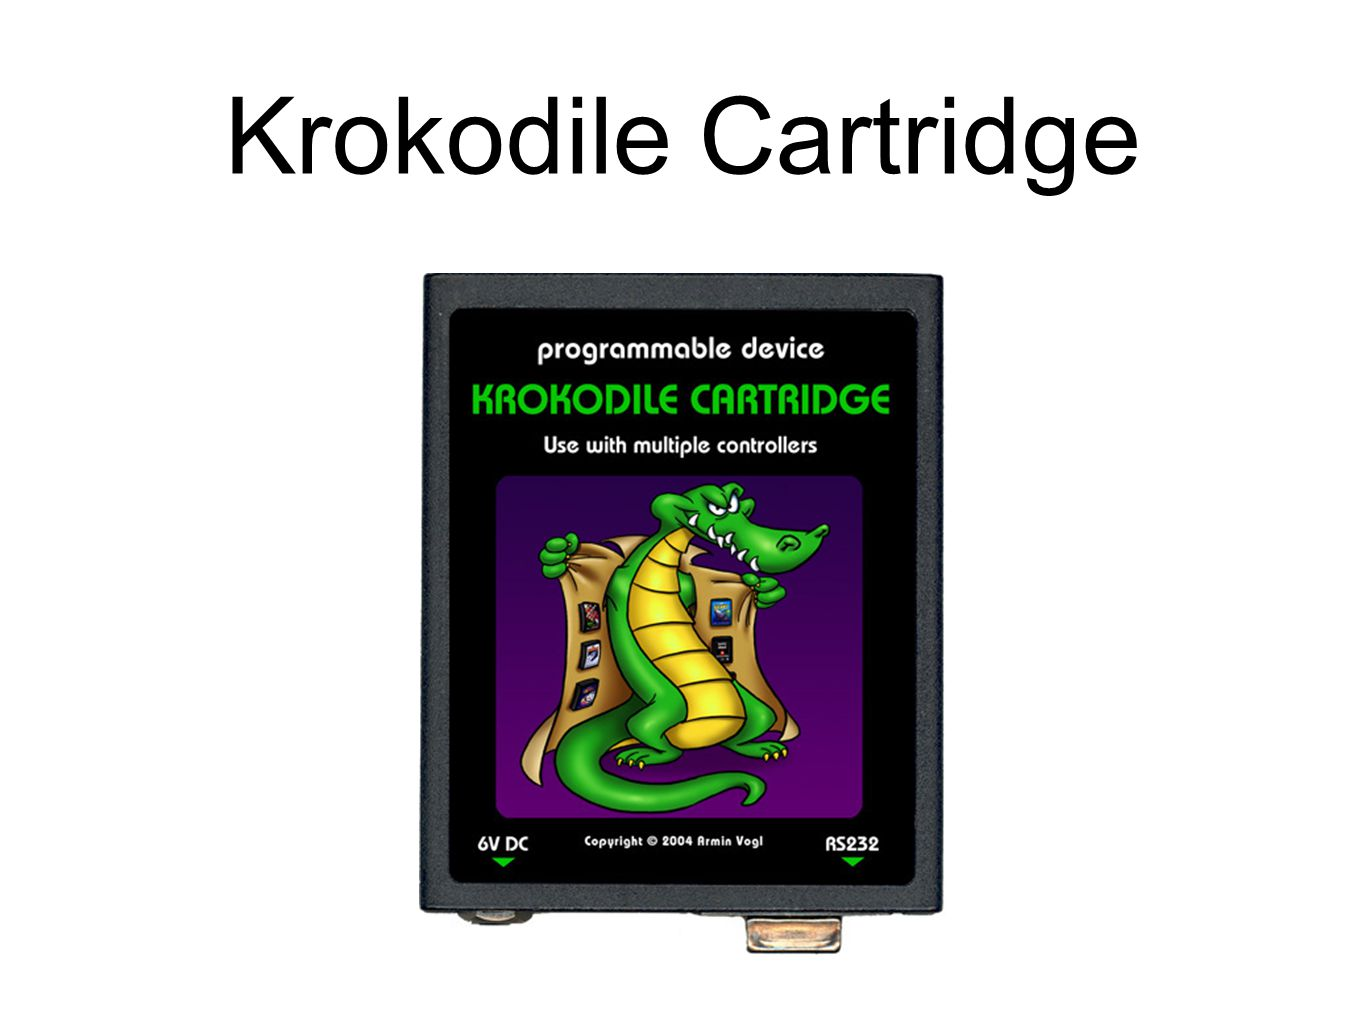 Krokodile Cartridge